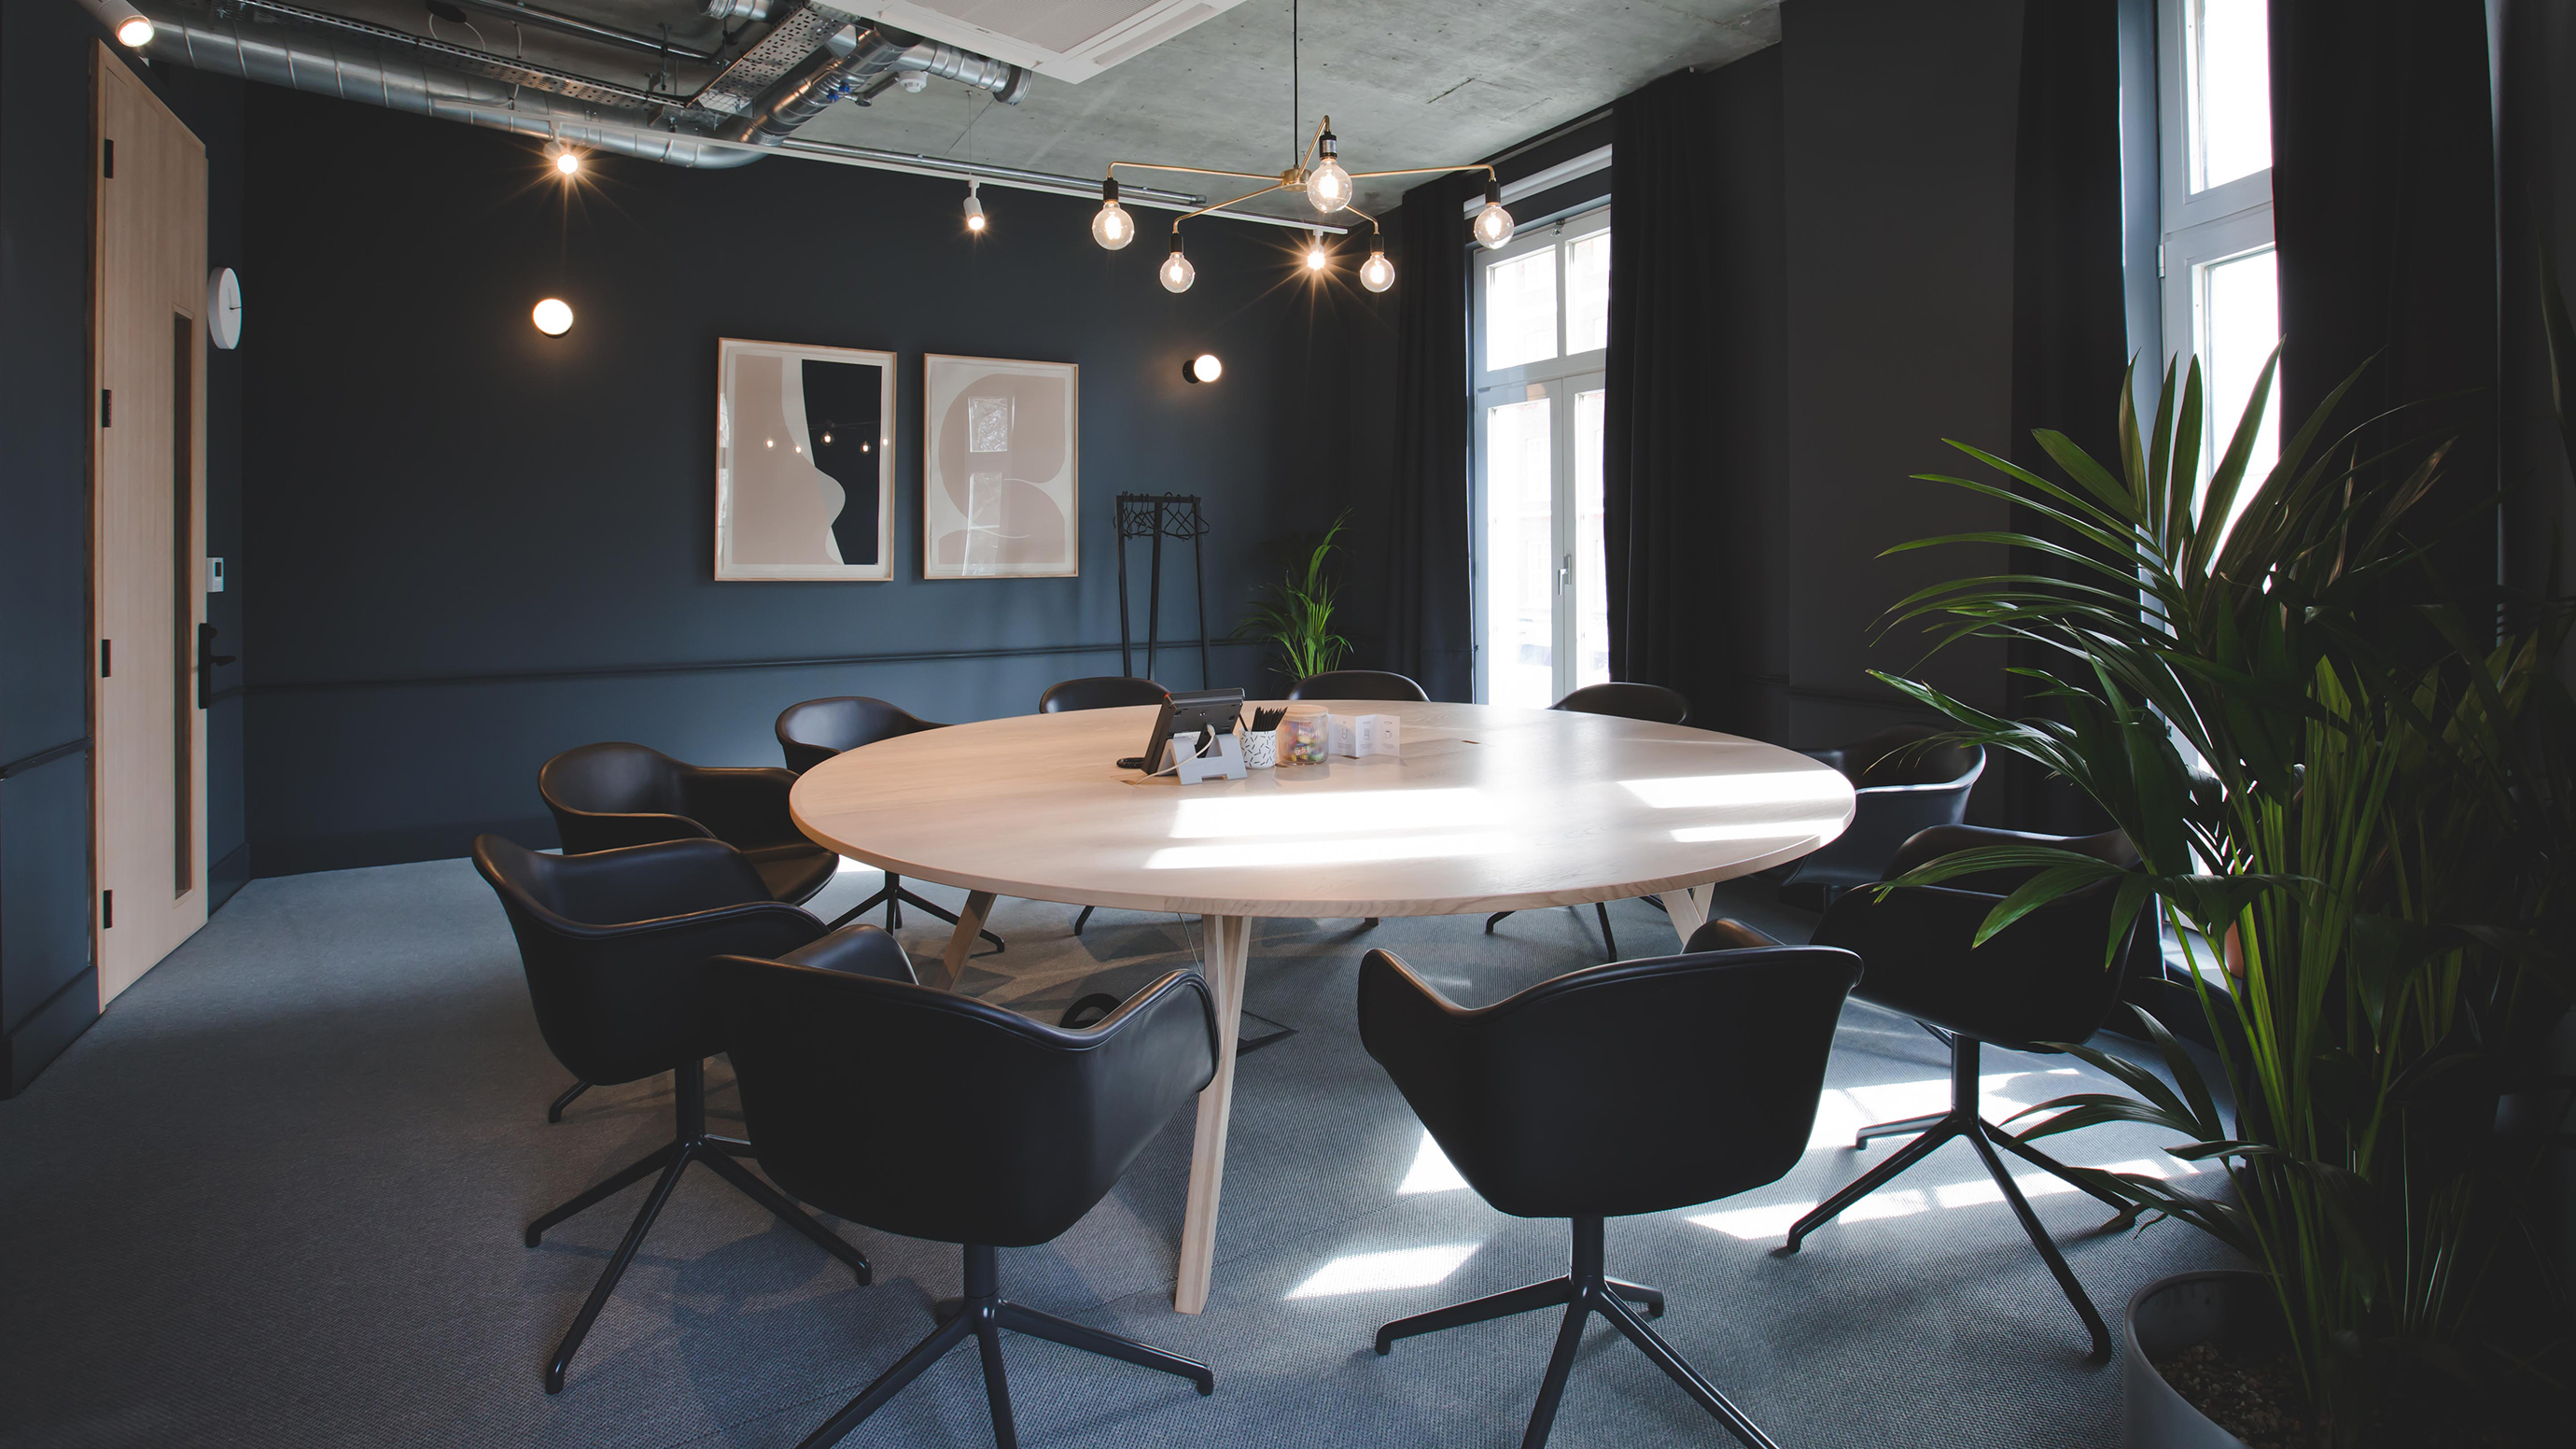 Medium meeting room with pale wooden table and dark blue chairs and wall and carpet at TOG building Thomas House London